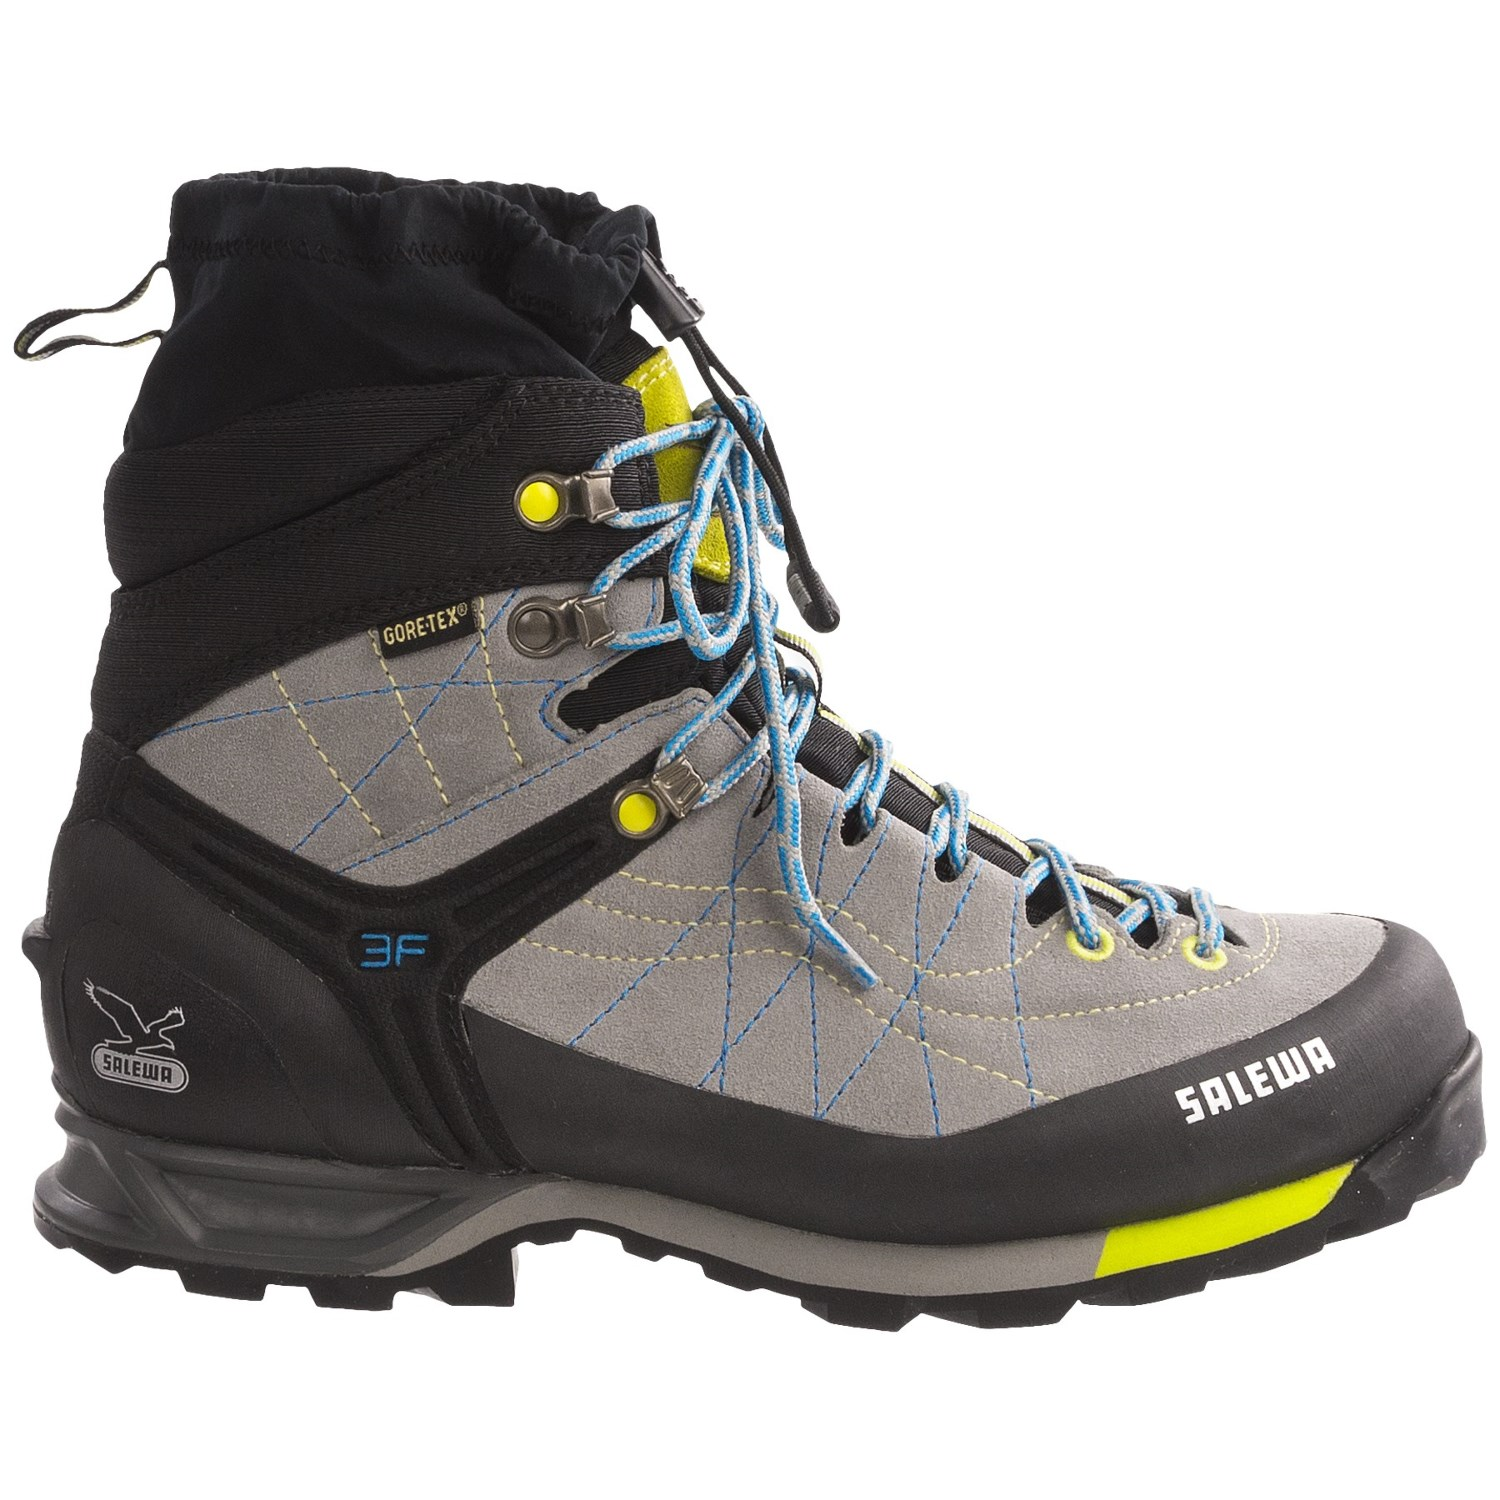 Salewa Snow Trainer Ins Gtx Gore Tex 174 Hiking Boots For